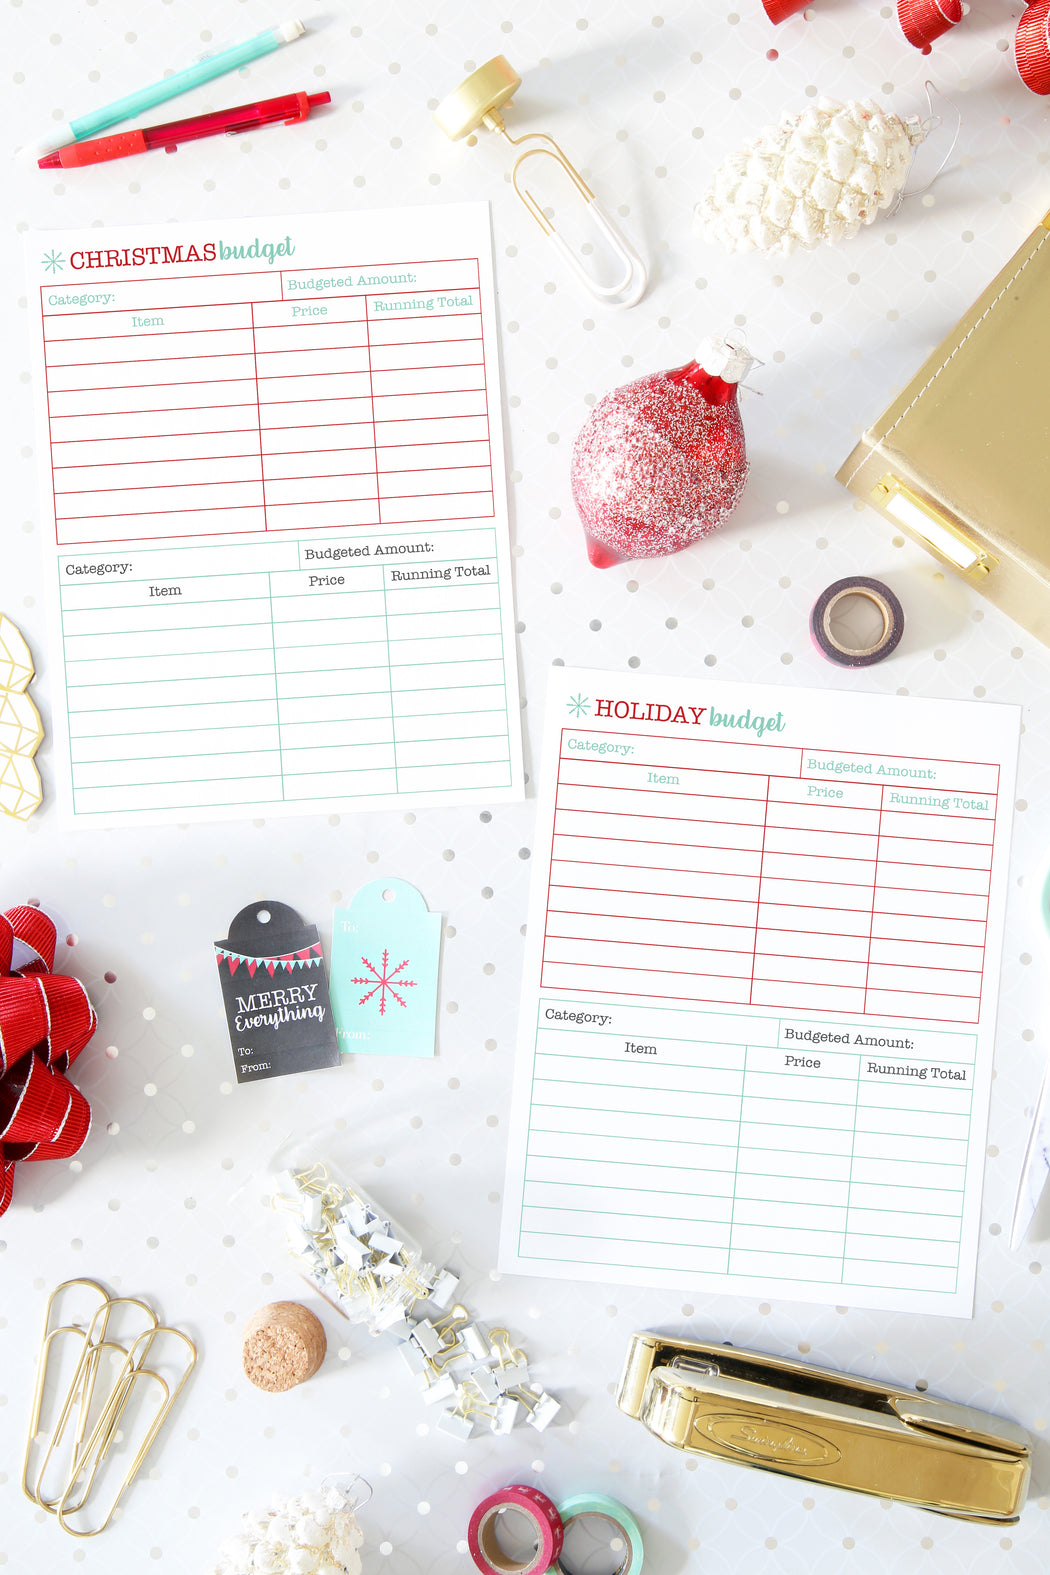 Christmas Budget Printable / Holiday Budget Printable, organizing printables, Christmas Planner, Holiday Planner, #printables #organizing